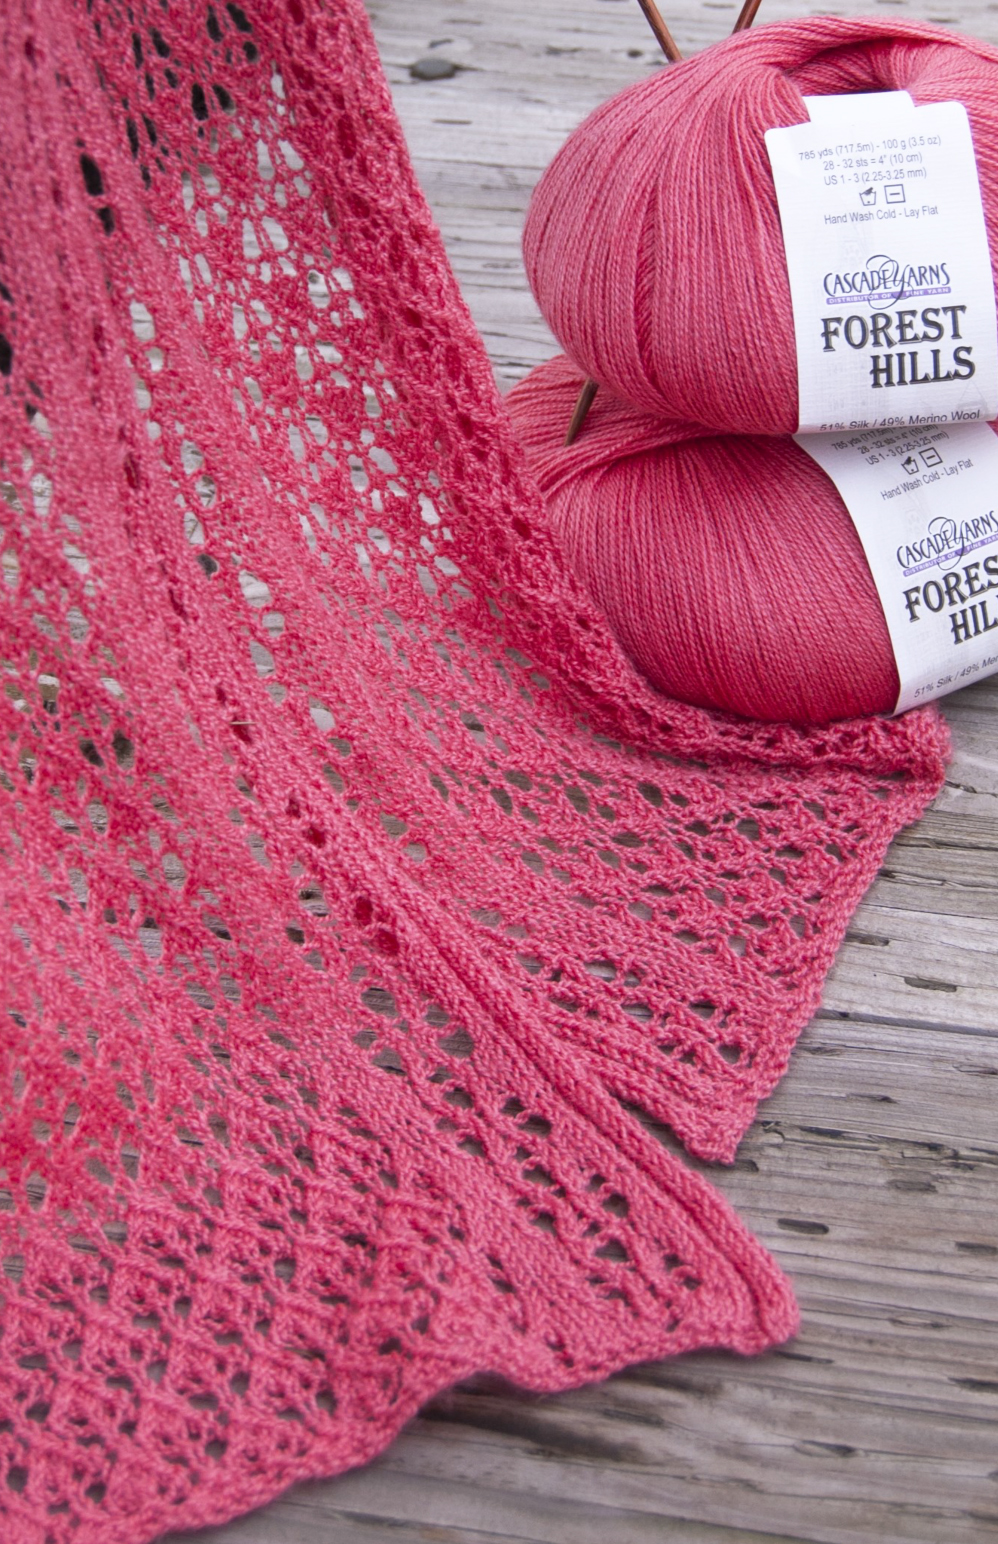 10 Lace Scarf Knitting Pattern - The Funky Stitch